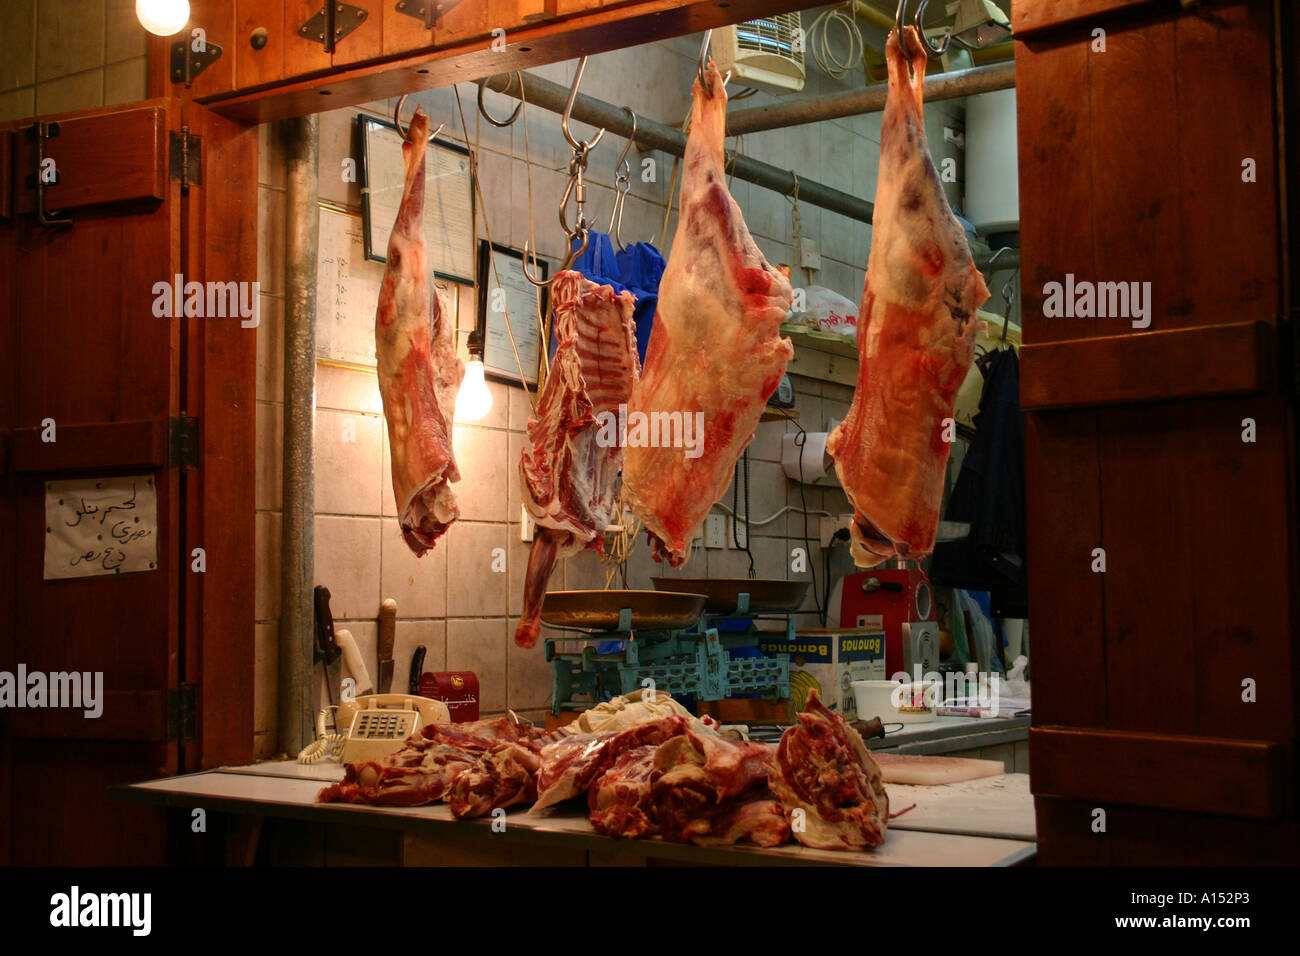 how to buy meat from a butcher